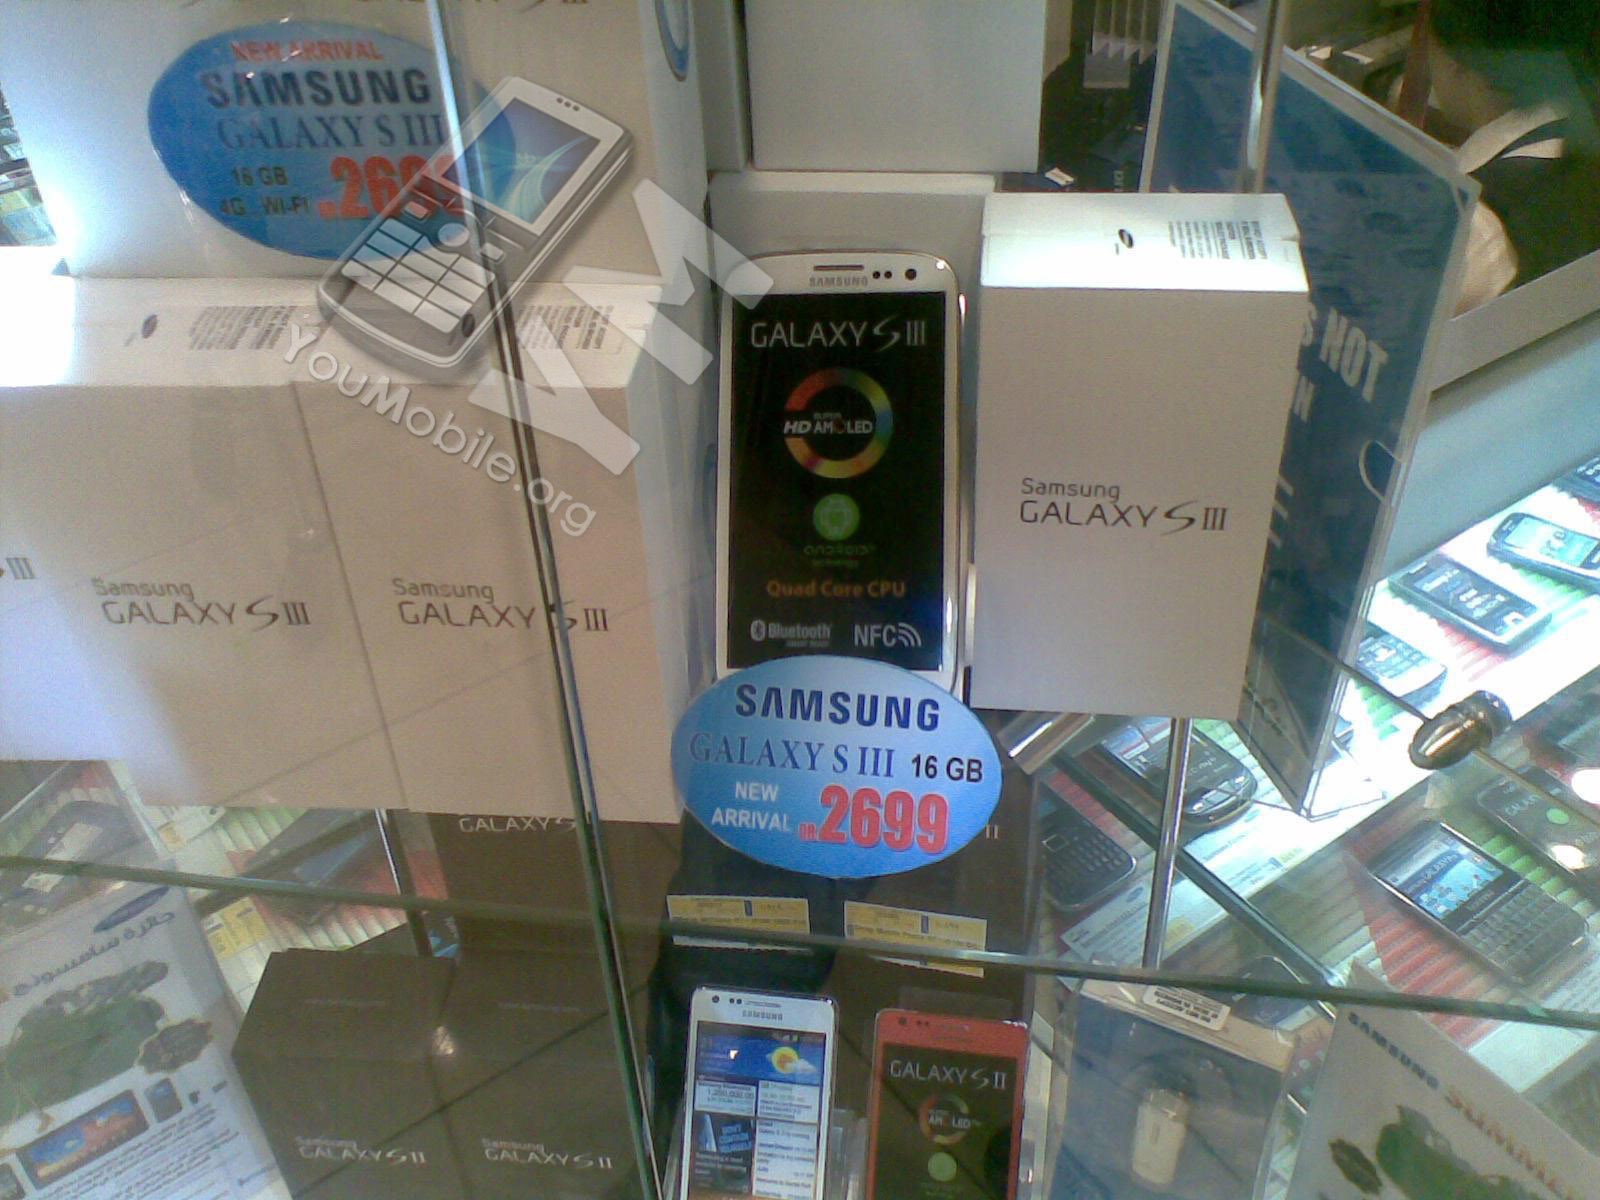 Galaxy S III launch in Qatar